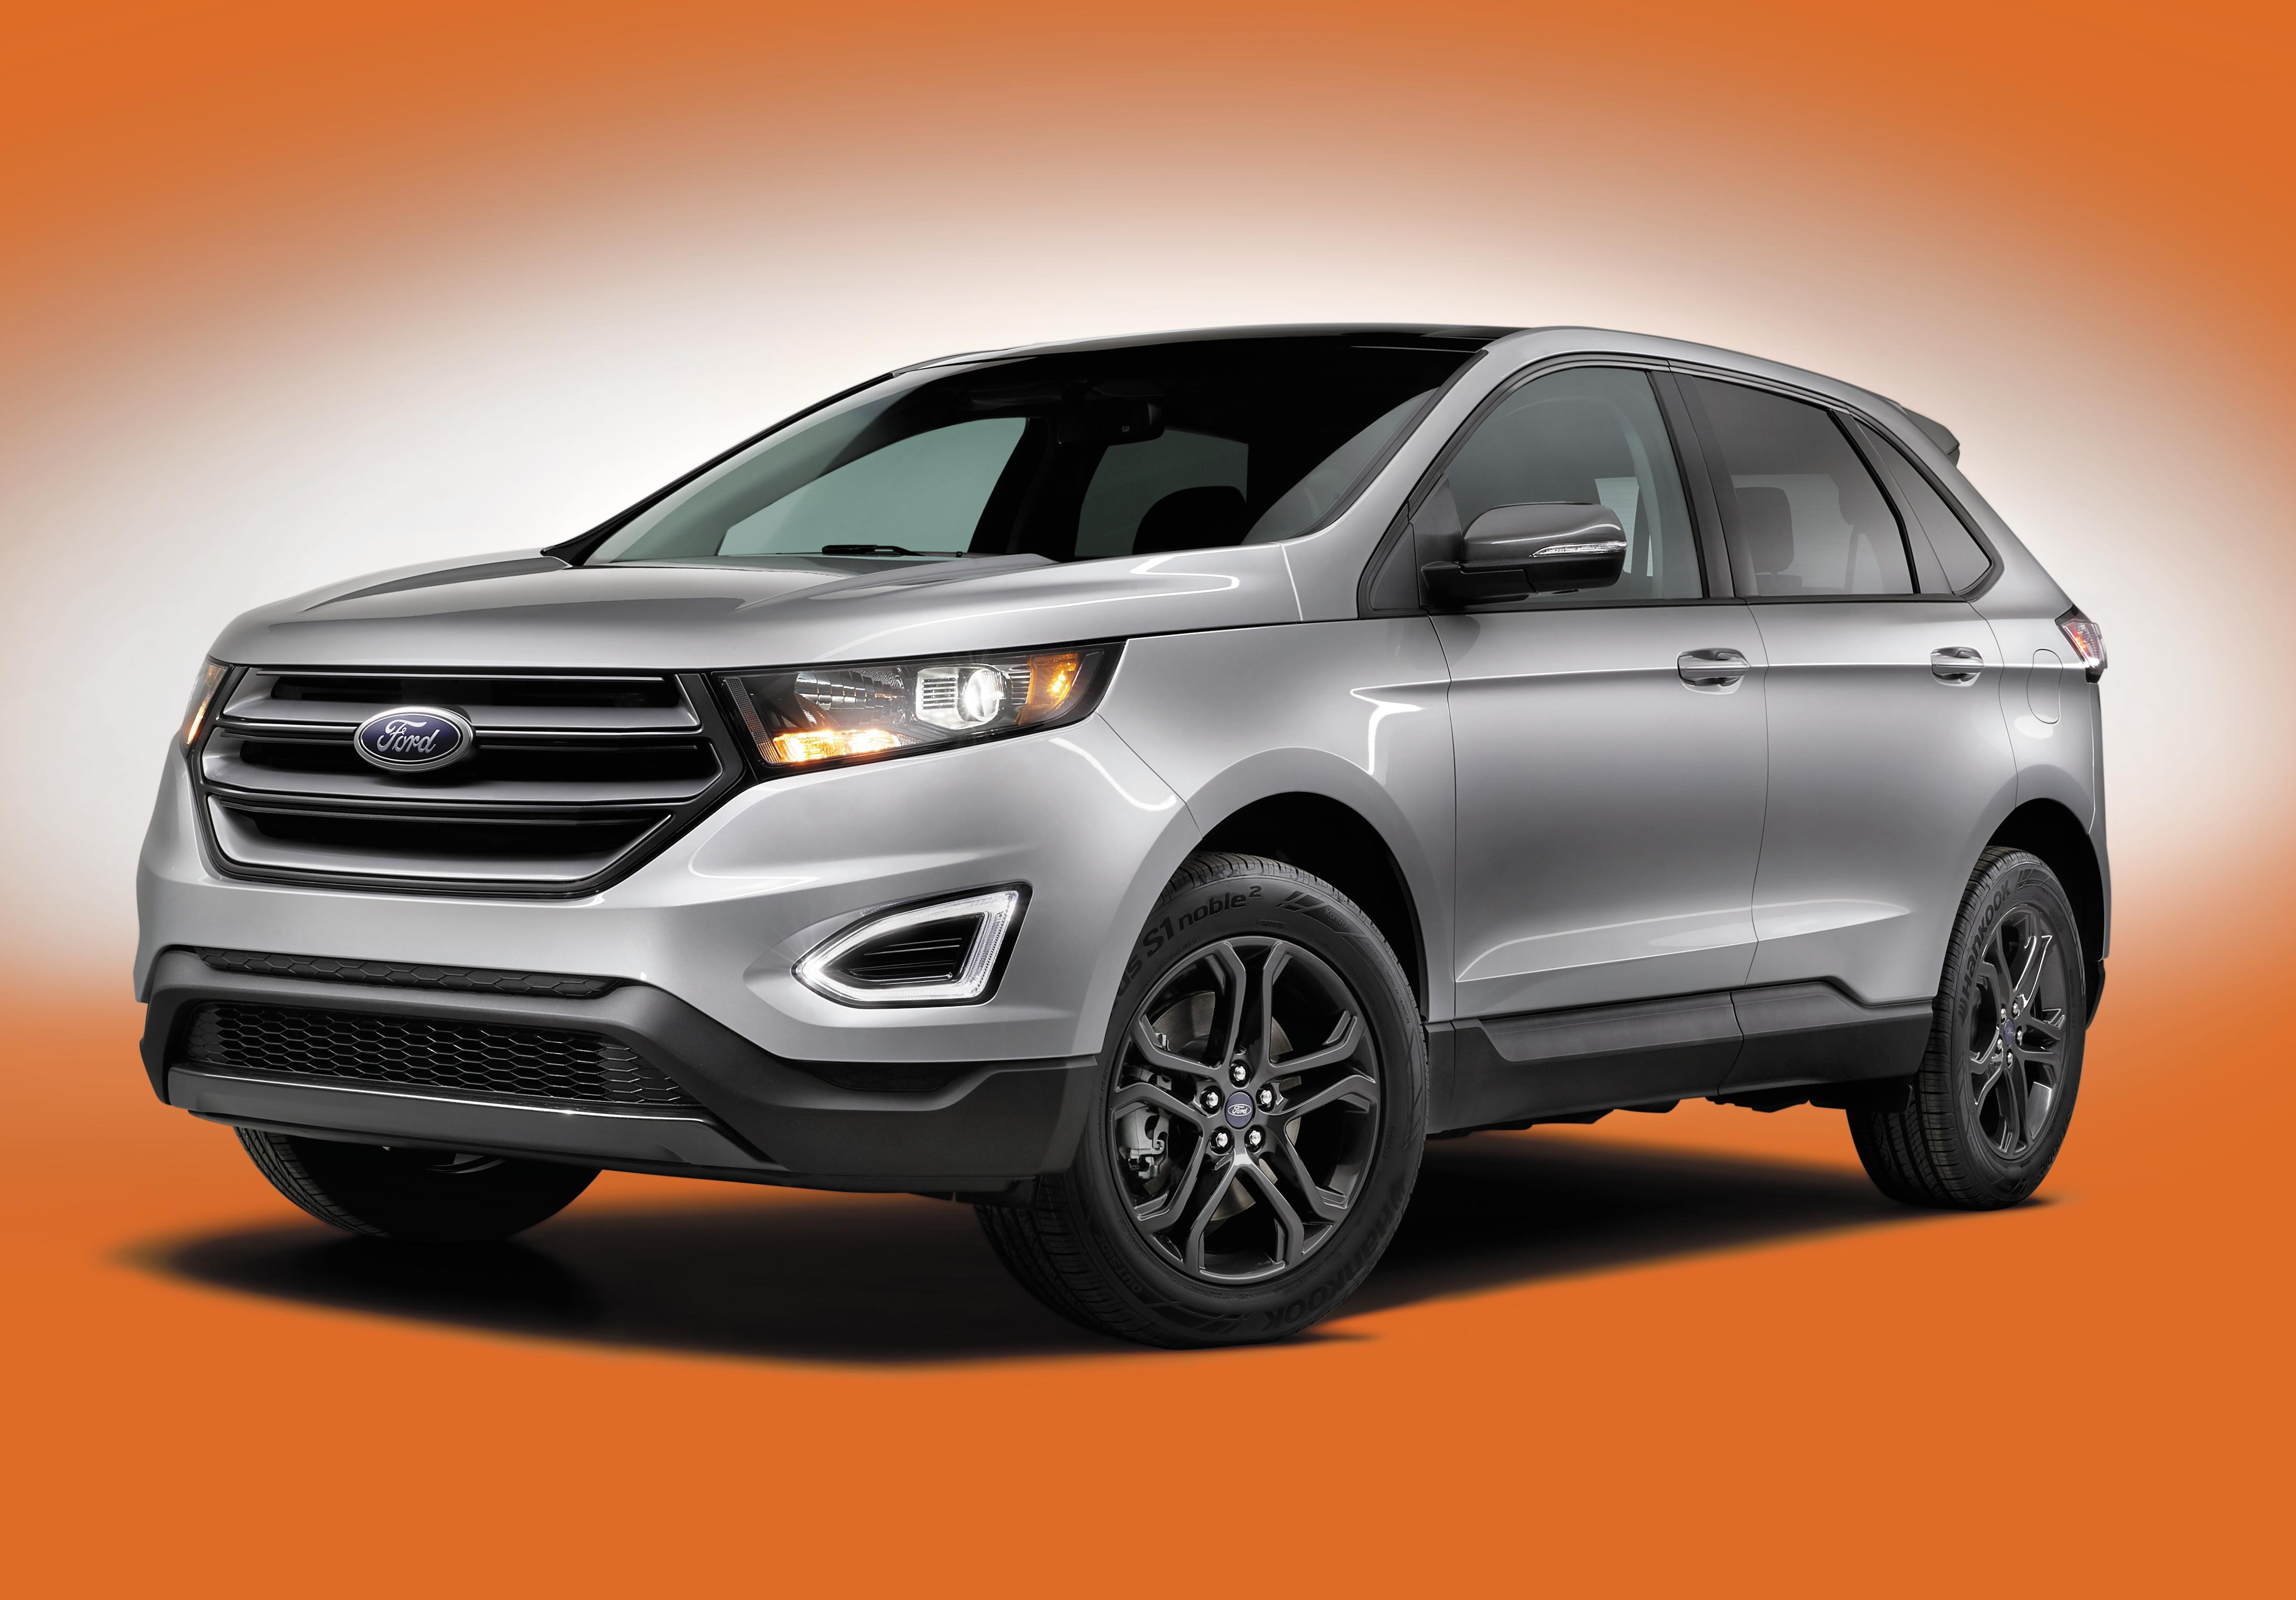 Ford Edge The Suv Built In Canada For Canada